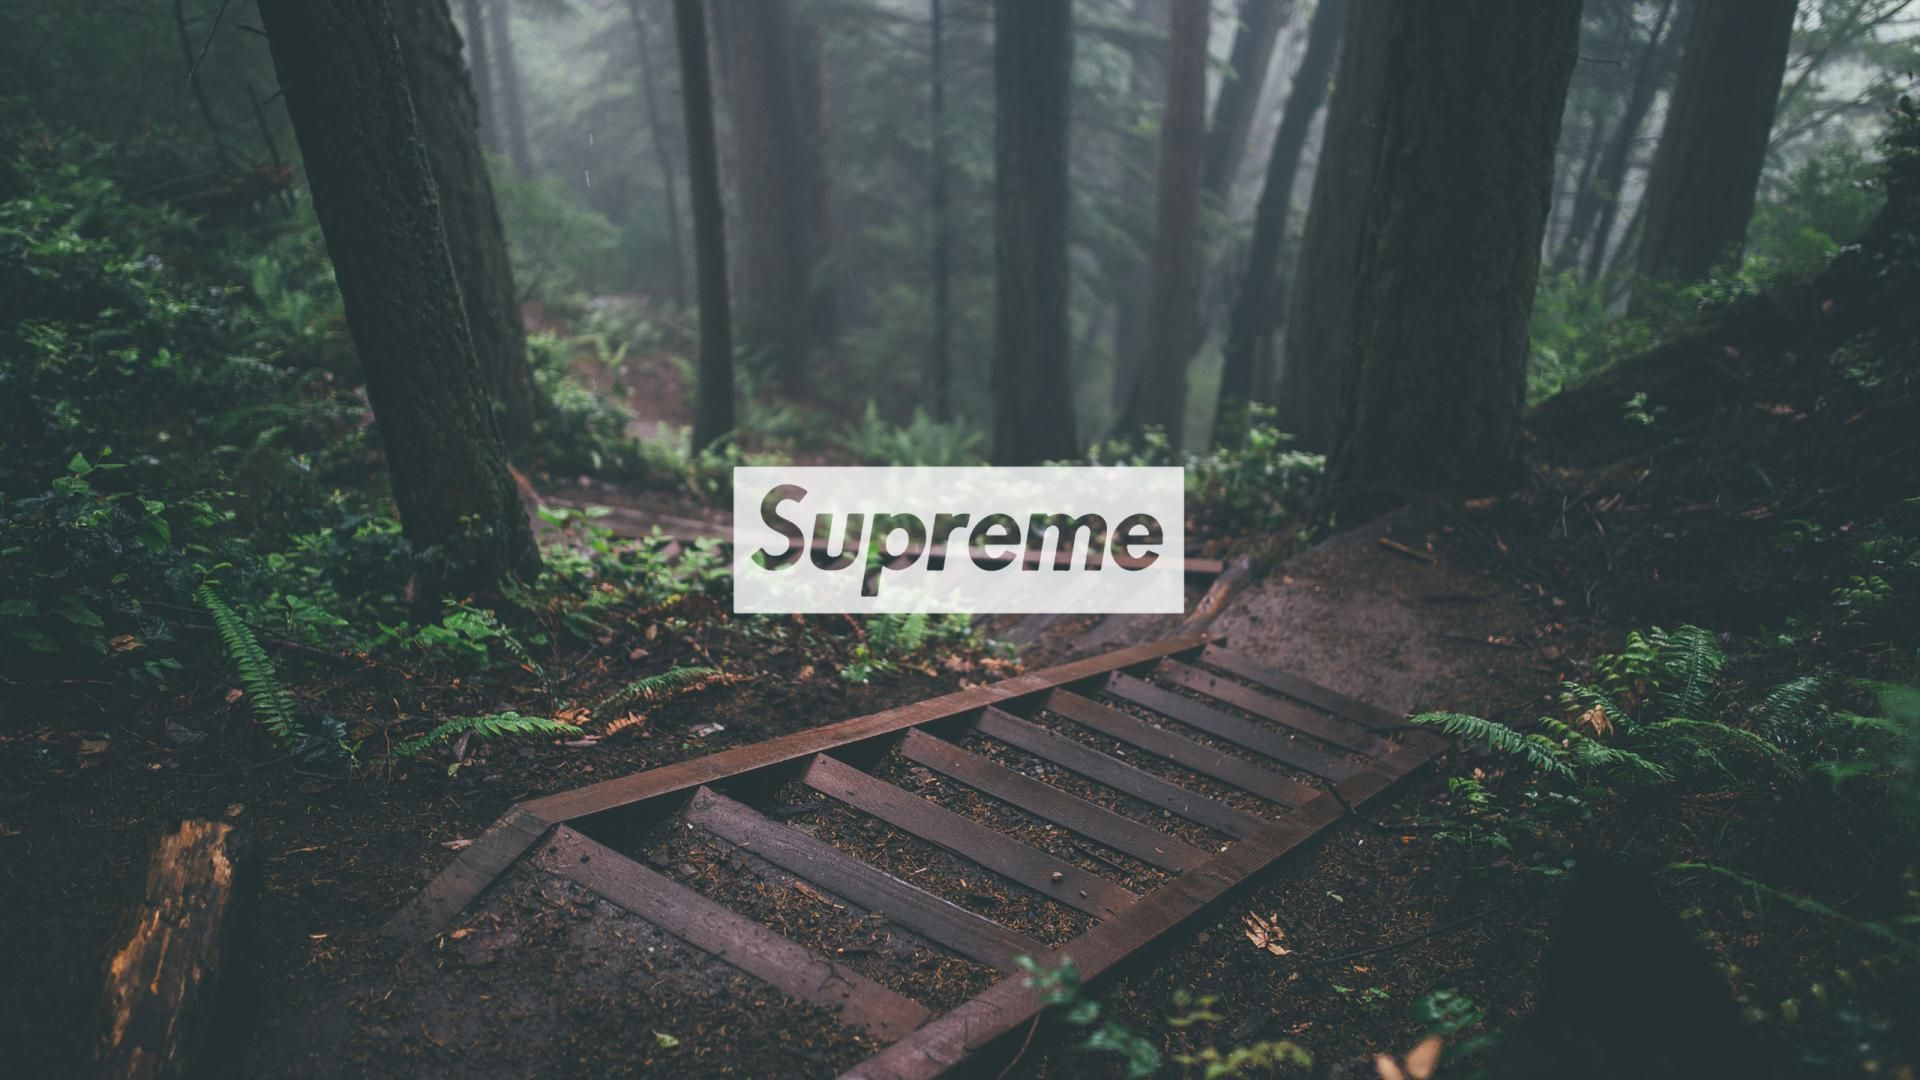 Supreme Full Hd Wallpapers Free Download For Desktop Pc Supreme Wallpaper Supreme Wallpaper Hd Desktop Wallpaper Art